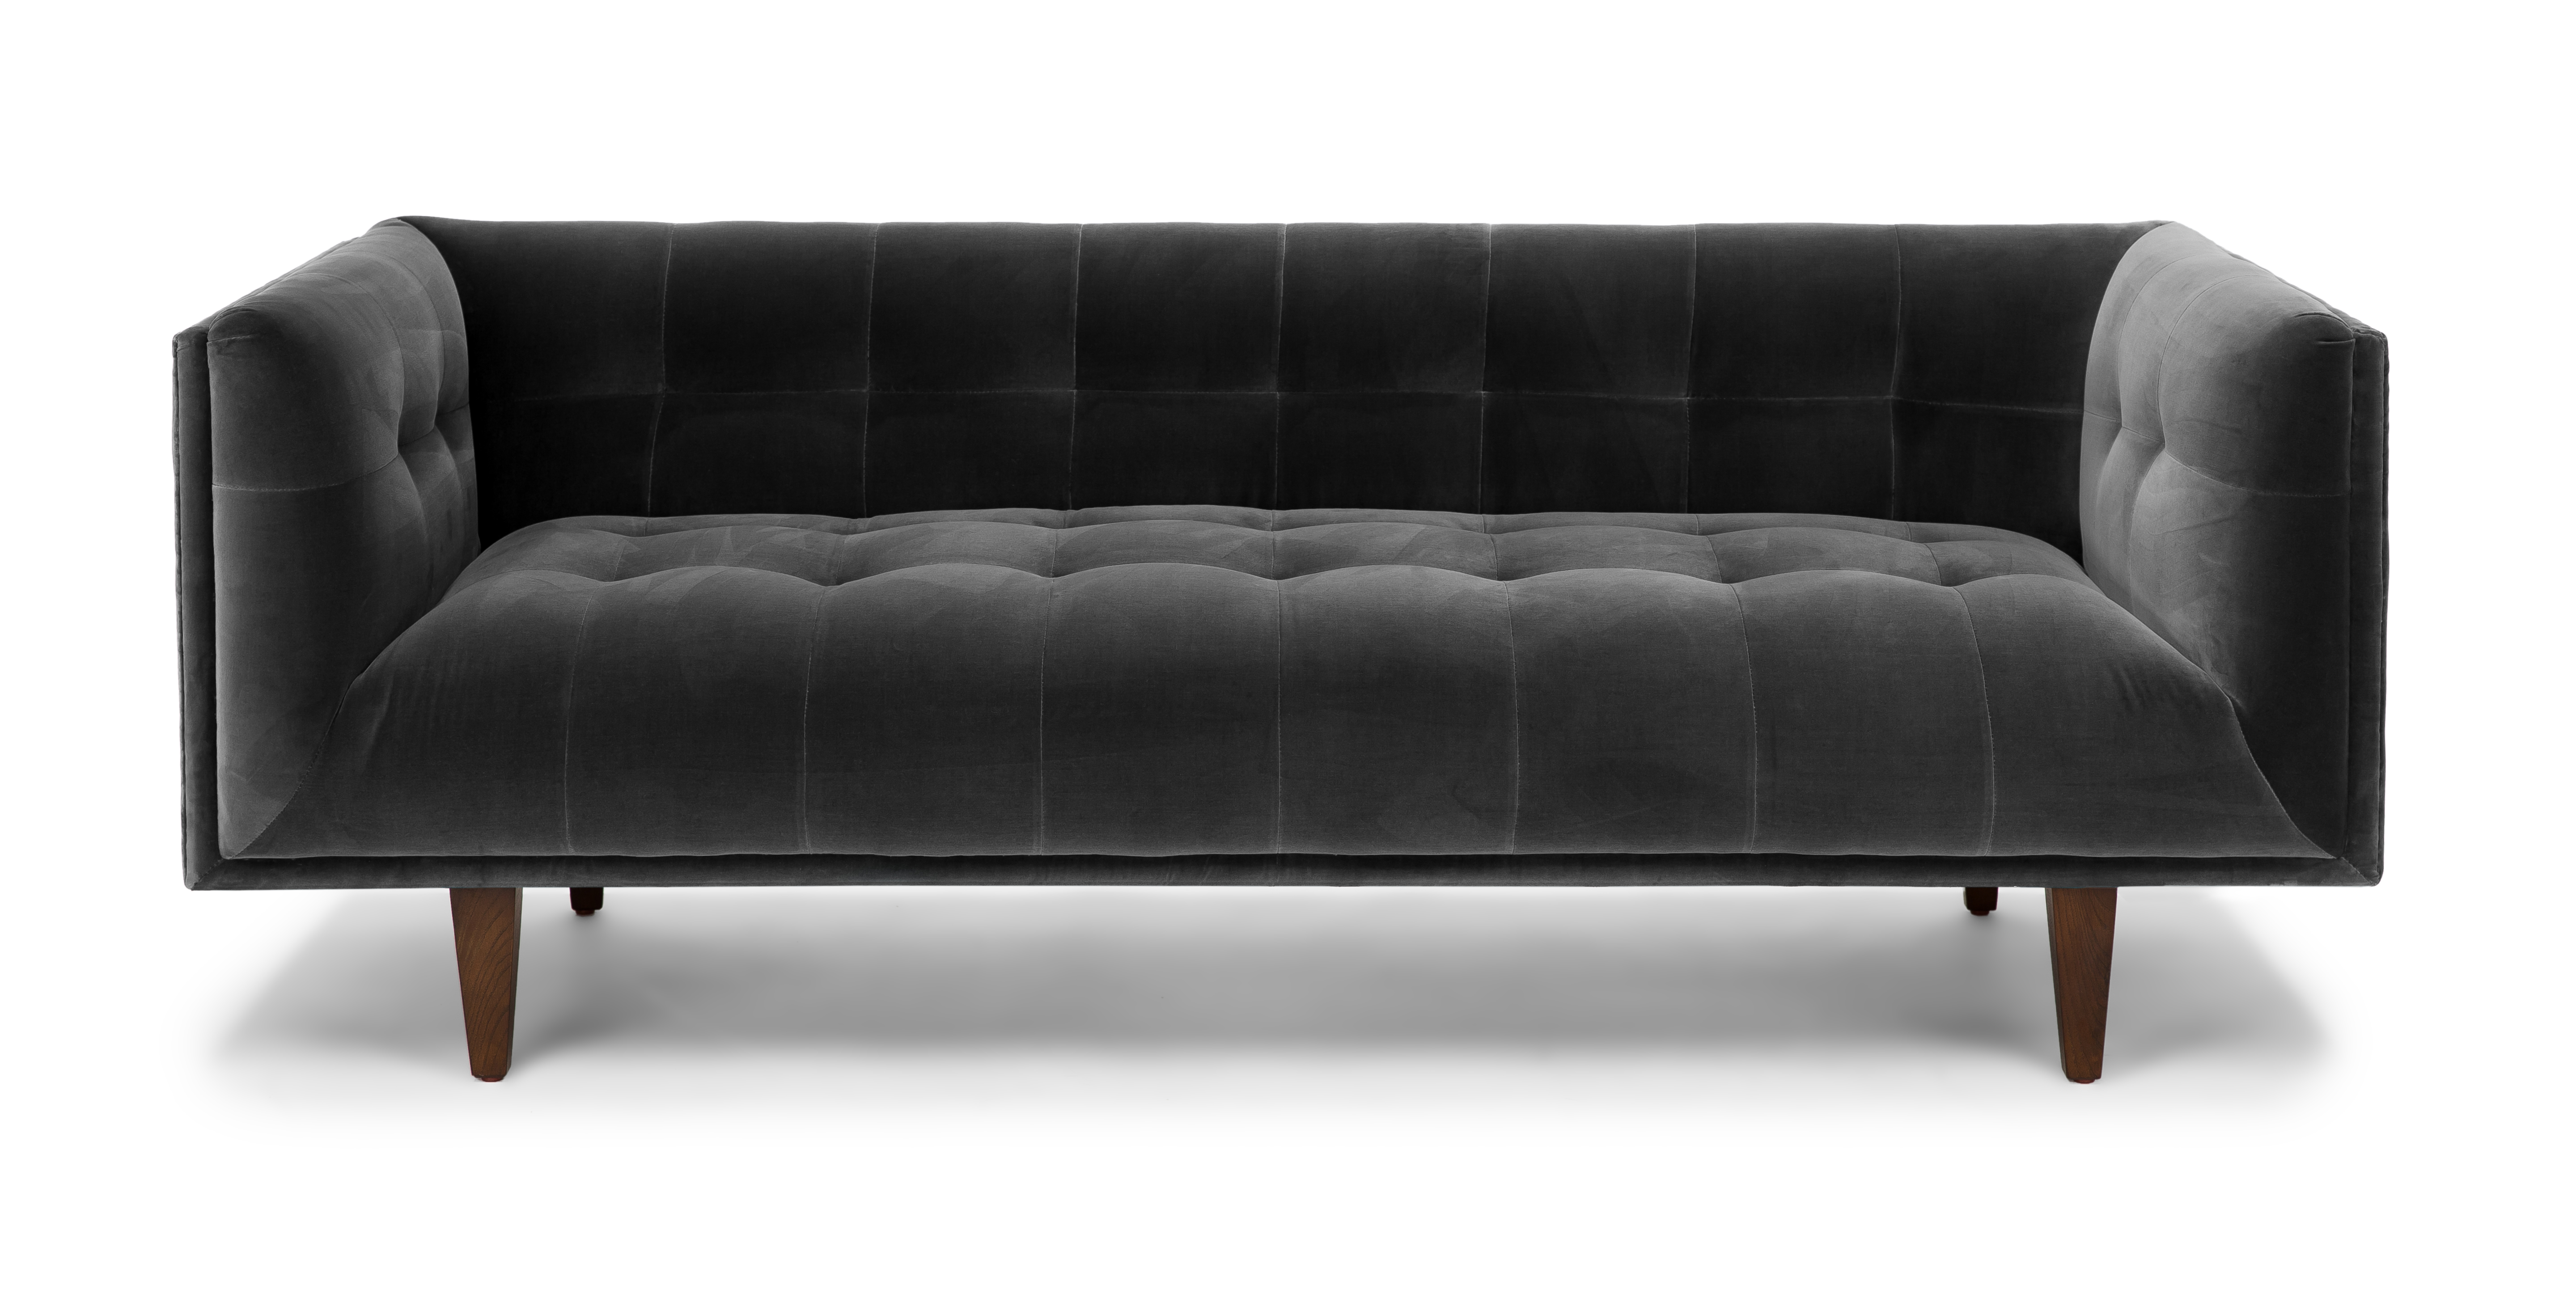 12 designer picked sofas for every budget and people with pets and rh denverpost com Cisco Brothers Sofa Gift Market Cisco Brothers Furniture